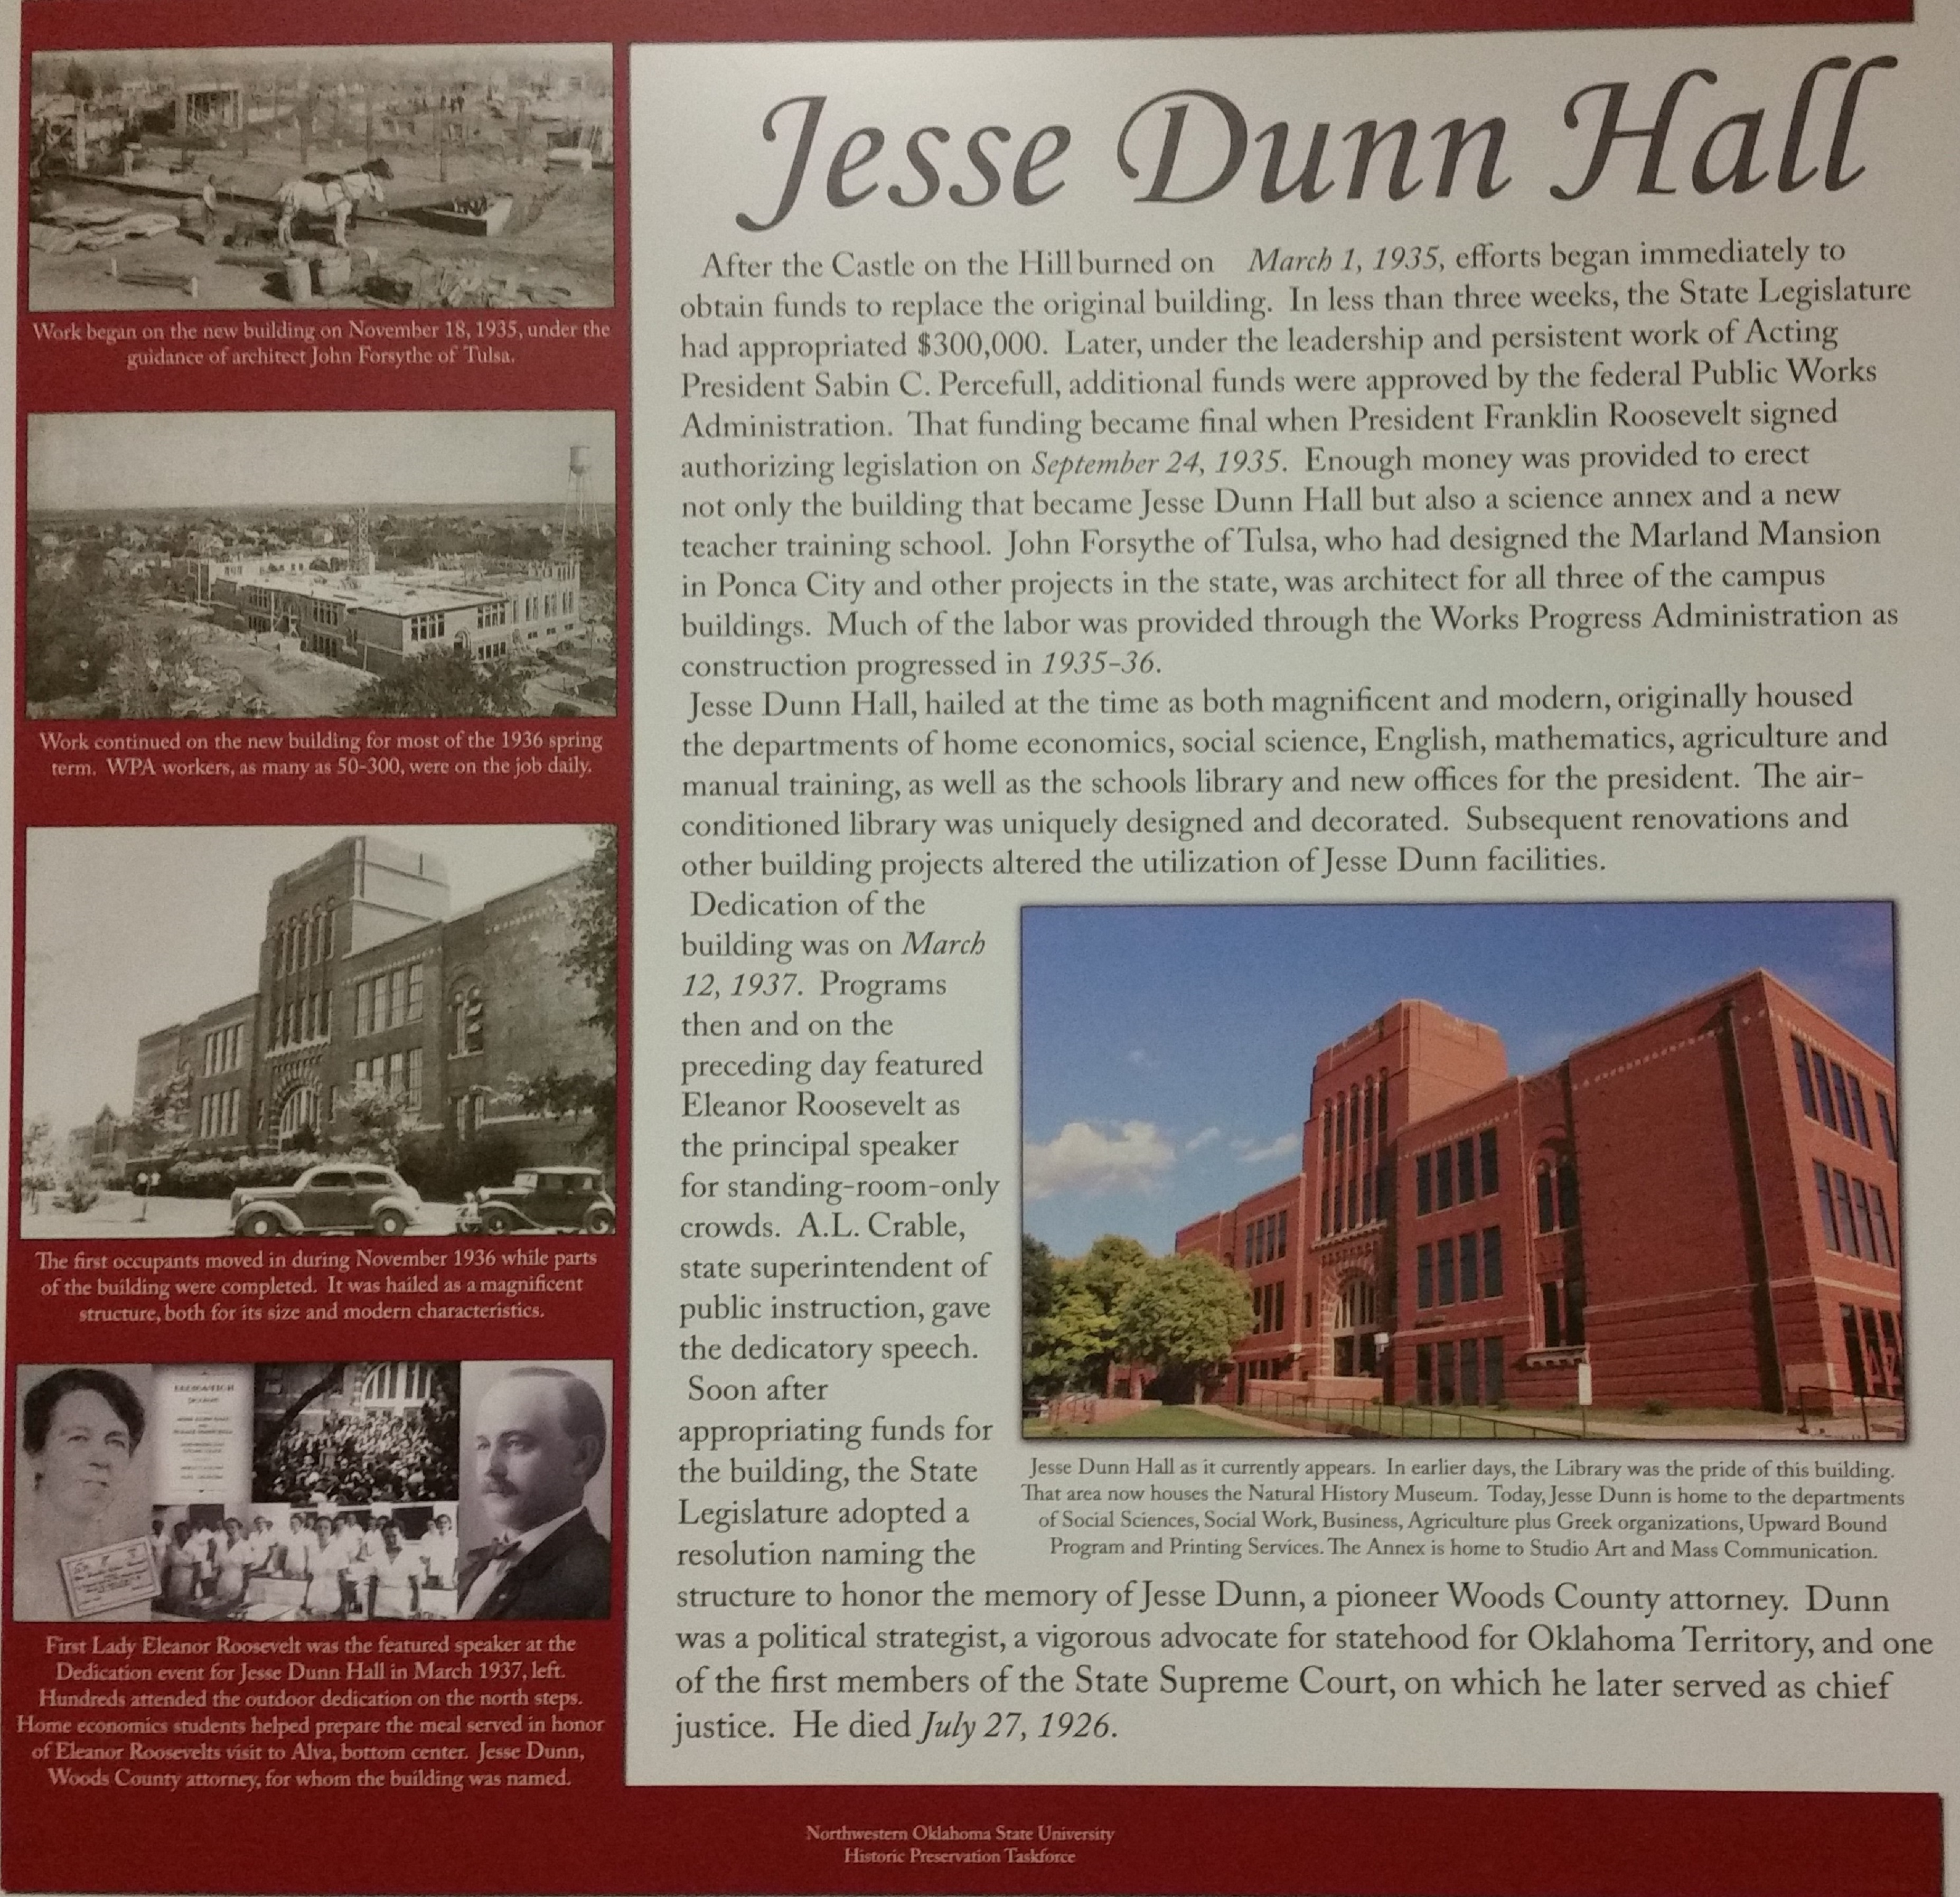 Poster explaining history of Jesse Dunn Hall